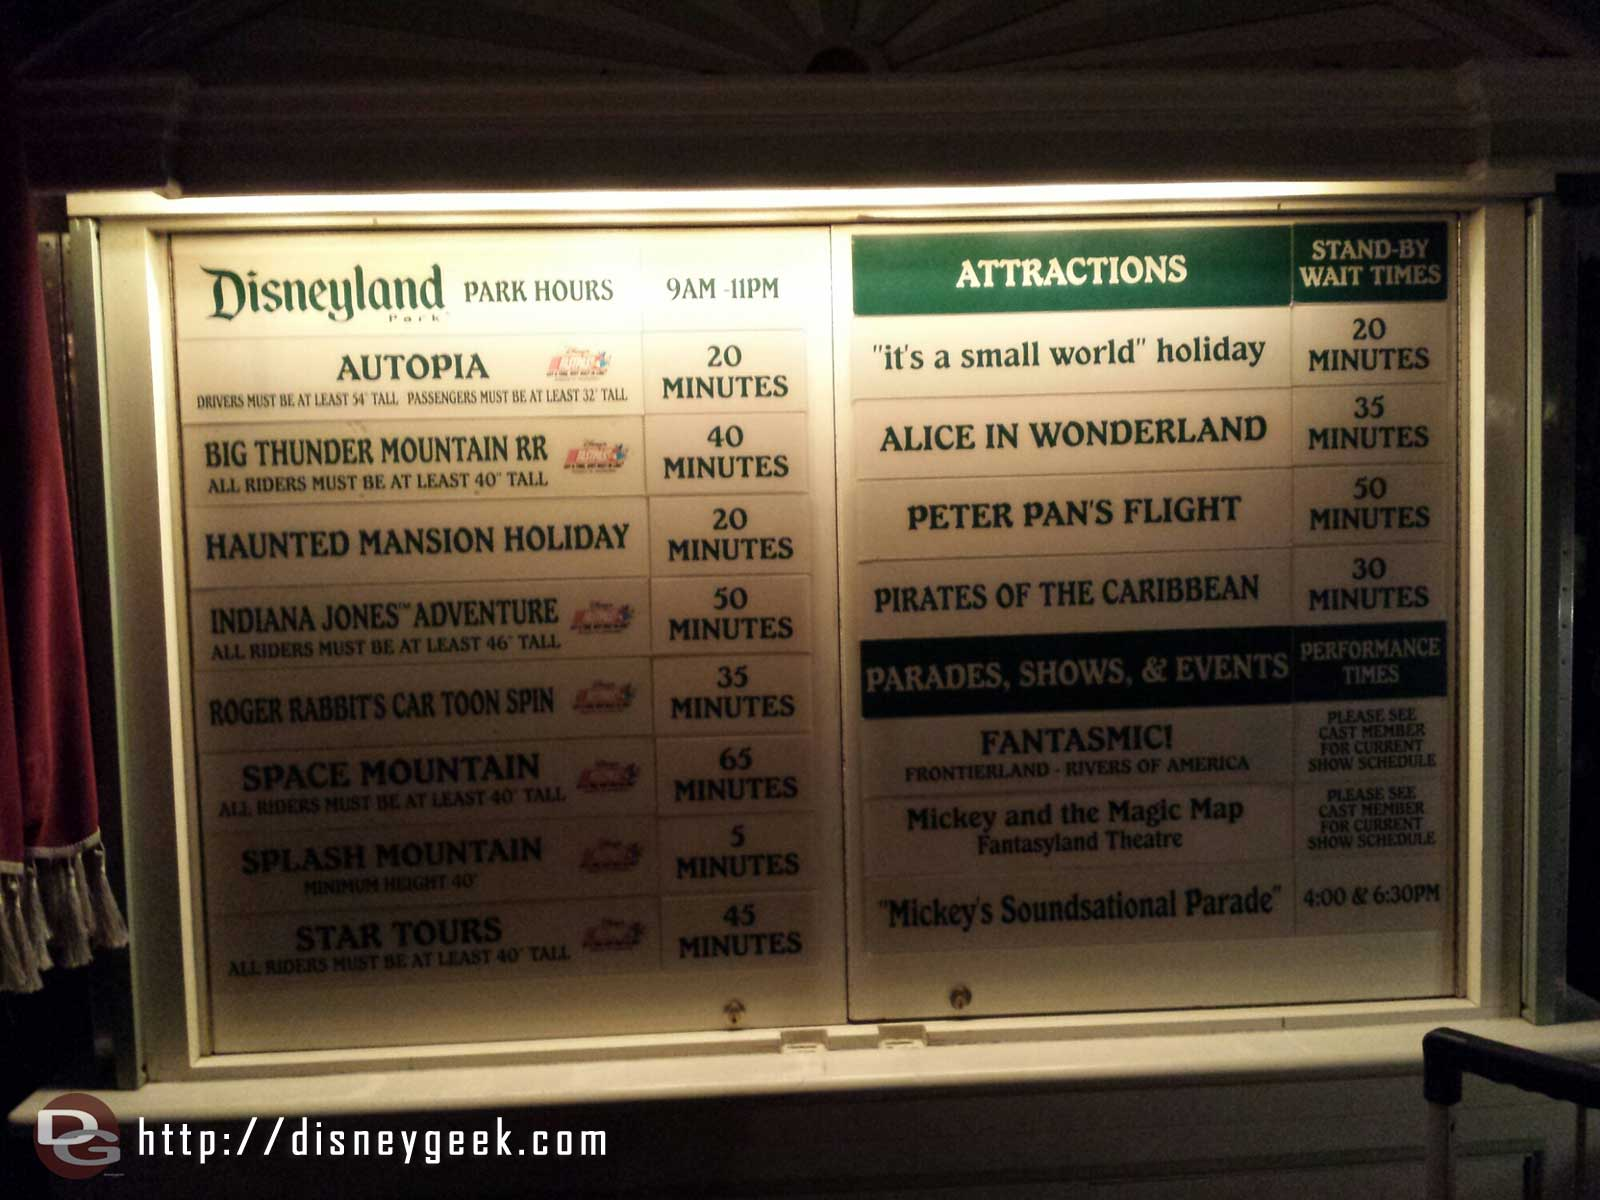 #Disneyland waits as of 8:34pm